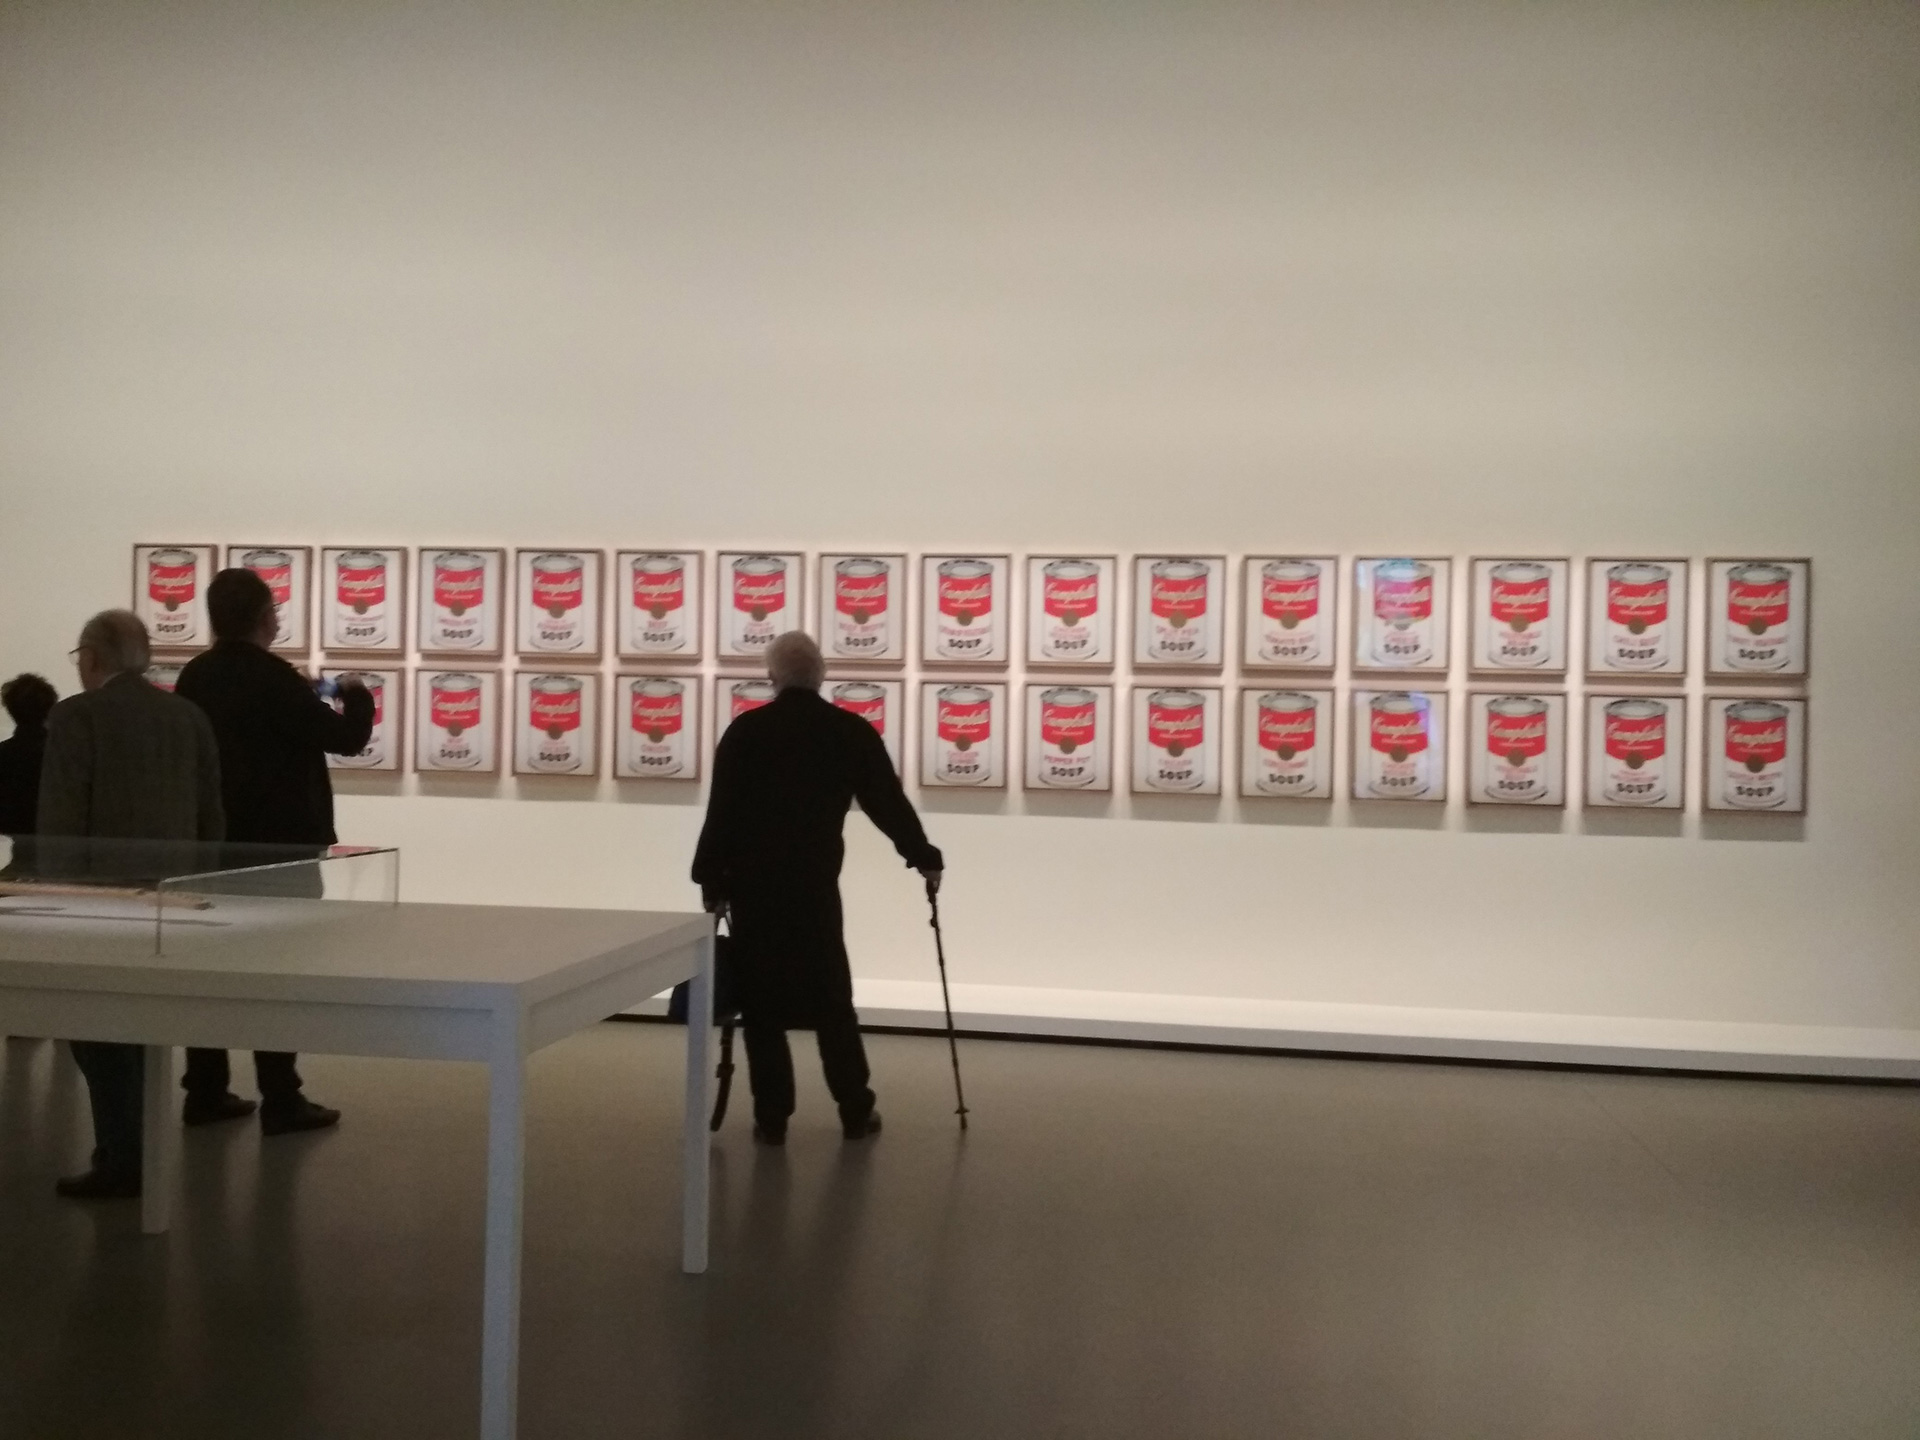 Campbell's Soup Cans, Andy Warhol, 1962, edition, Museum of Modern Art| Museum of Modern Art| STIR